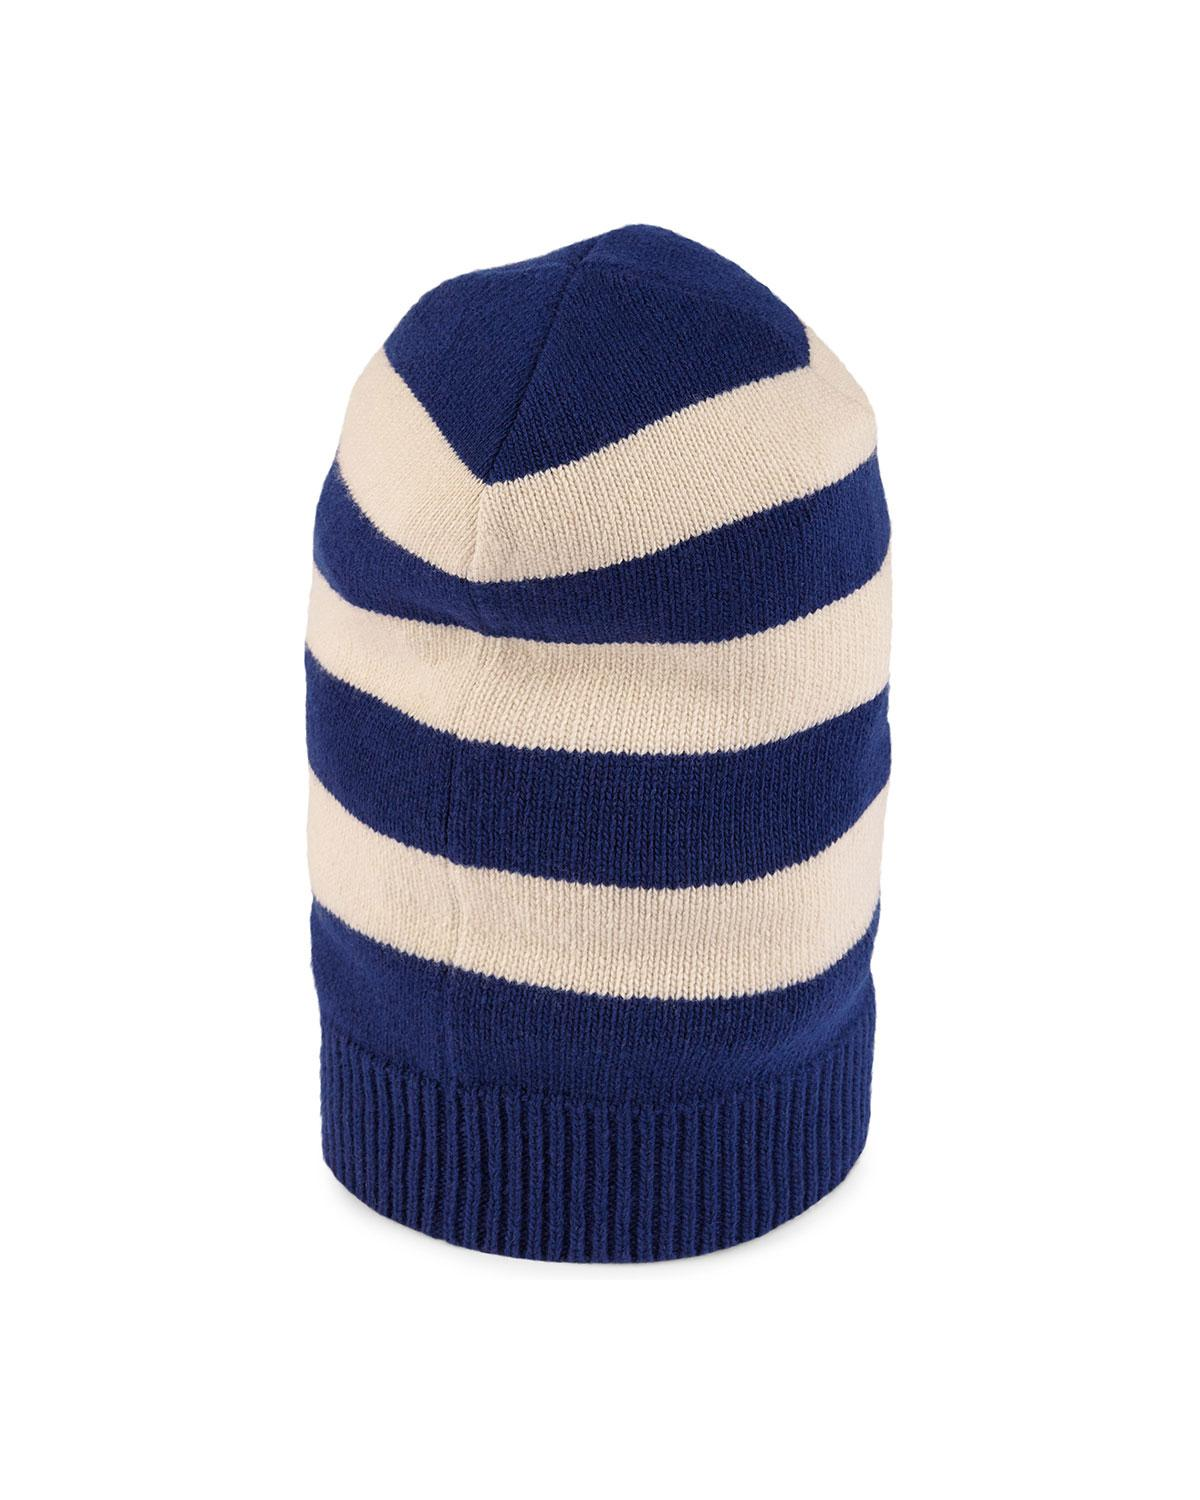 09350a8c54dfe Gucci Striped Wool Hat With Tiger Appliqué in Blue for Men - Lyst